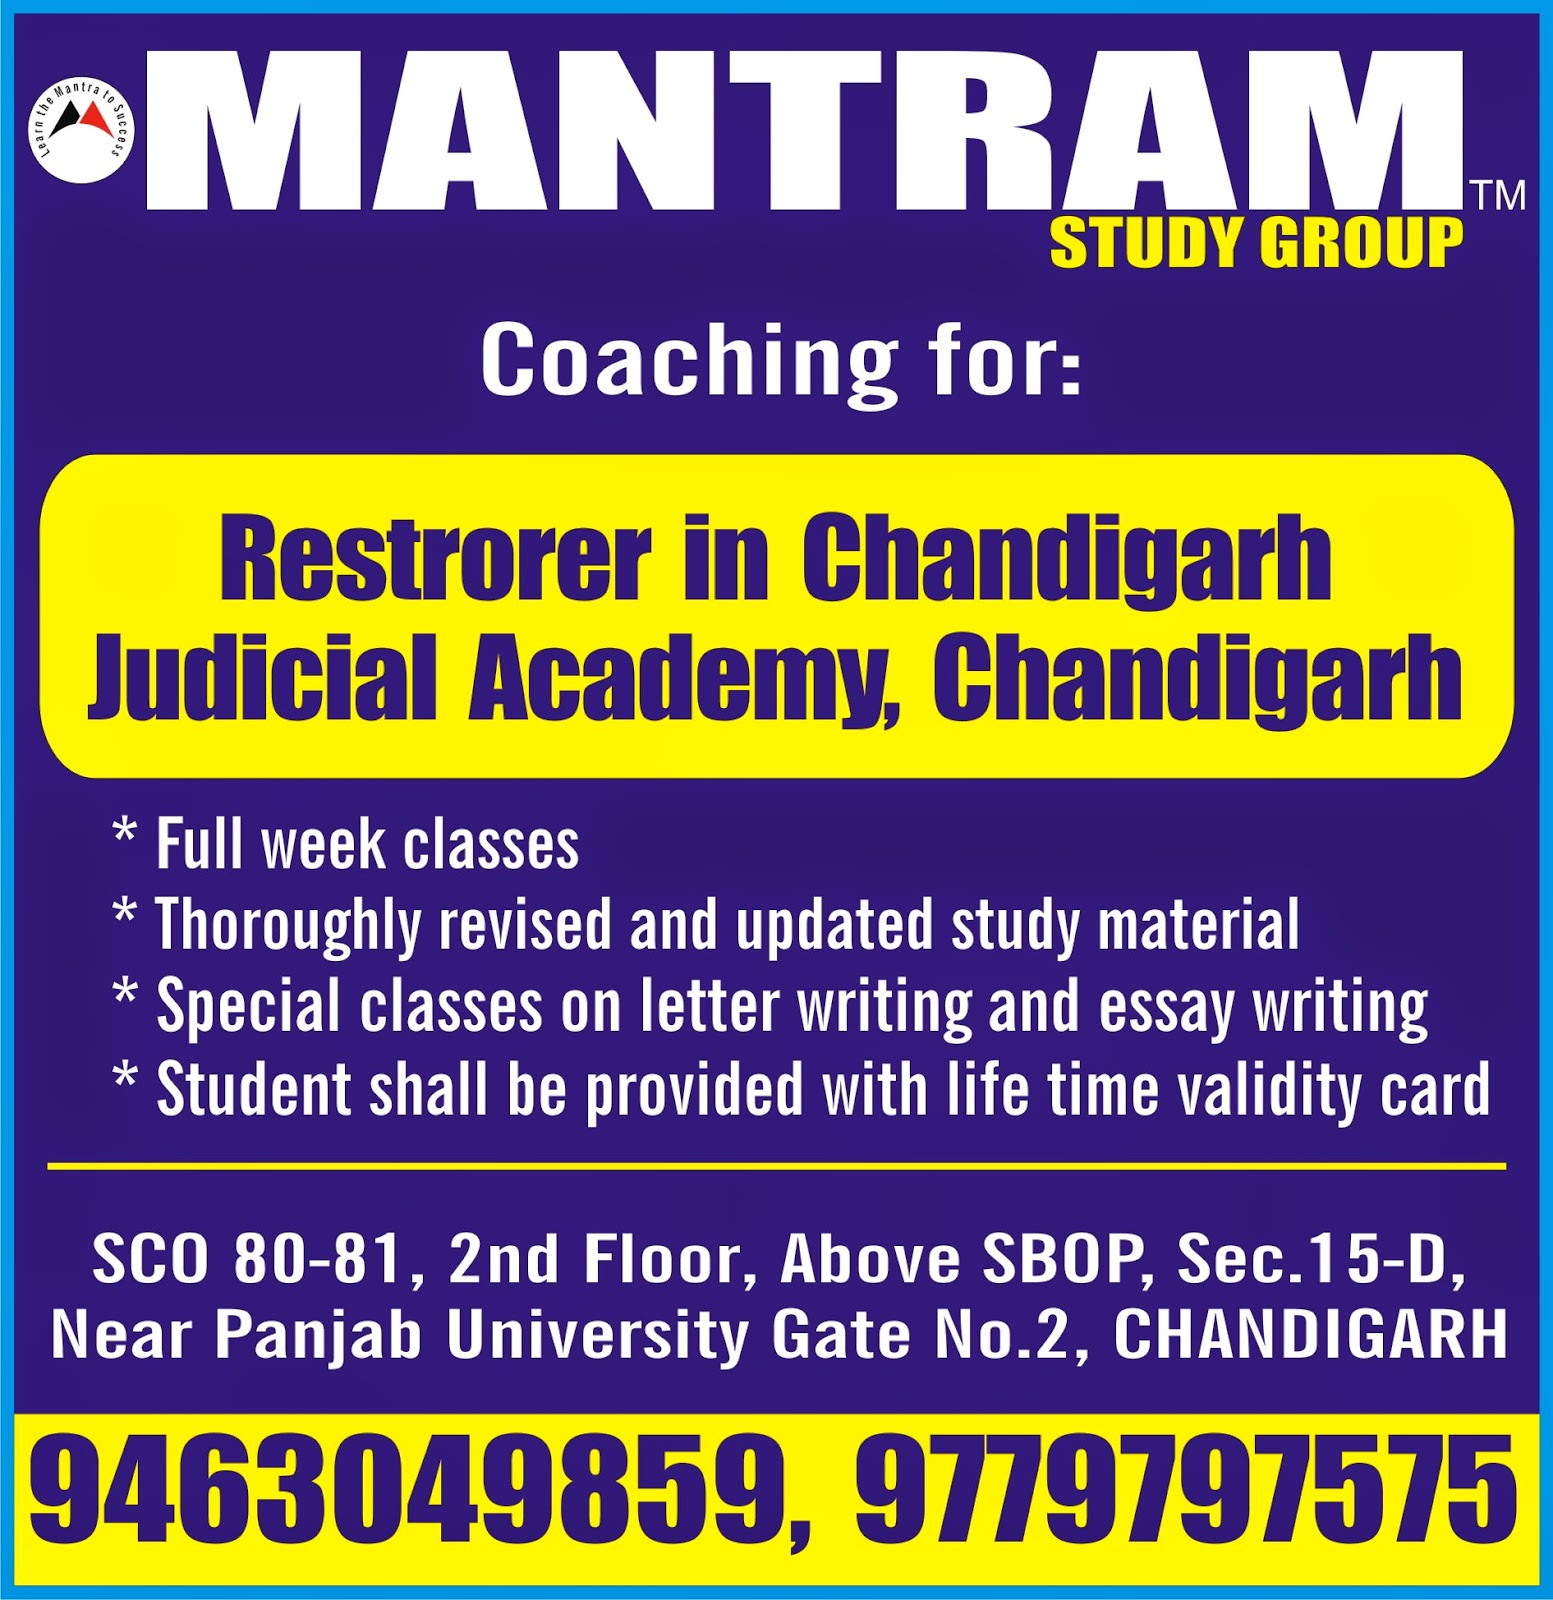 mantram study group latest govt jobs in 2017 expertise coaching for restorer chandigarh judicial academy sector 43 chandigarh by mantram study group in chandigarh